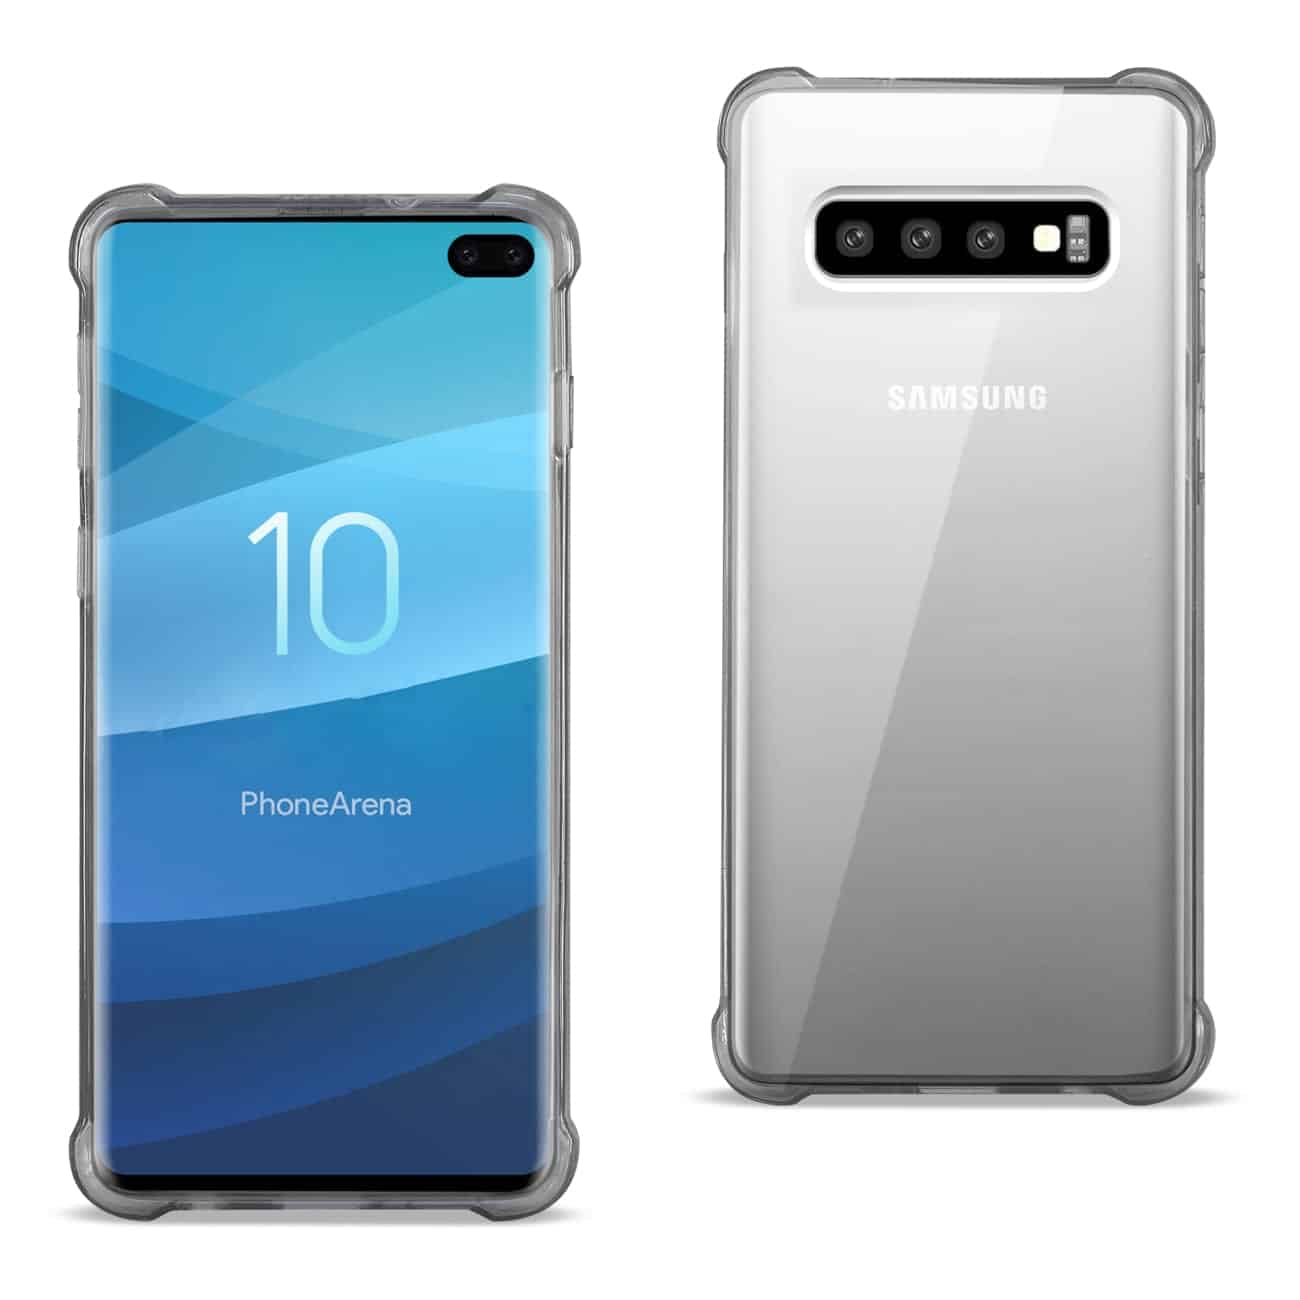 SAMSUNG GALAXY S10 Plus Clear Bumper Case With Air Cushion Protection In Clear Black